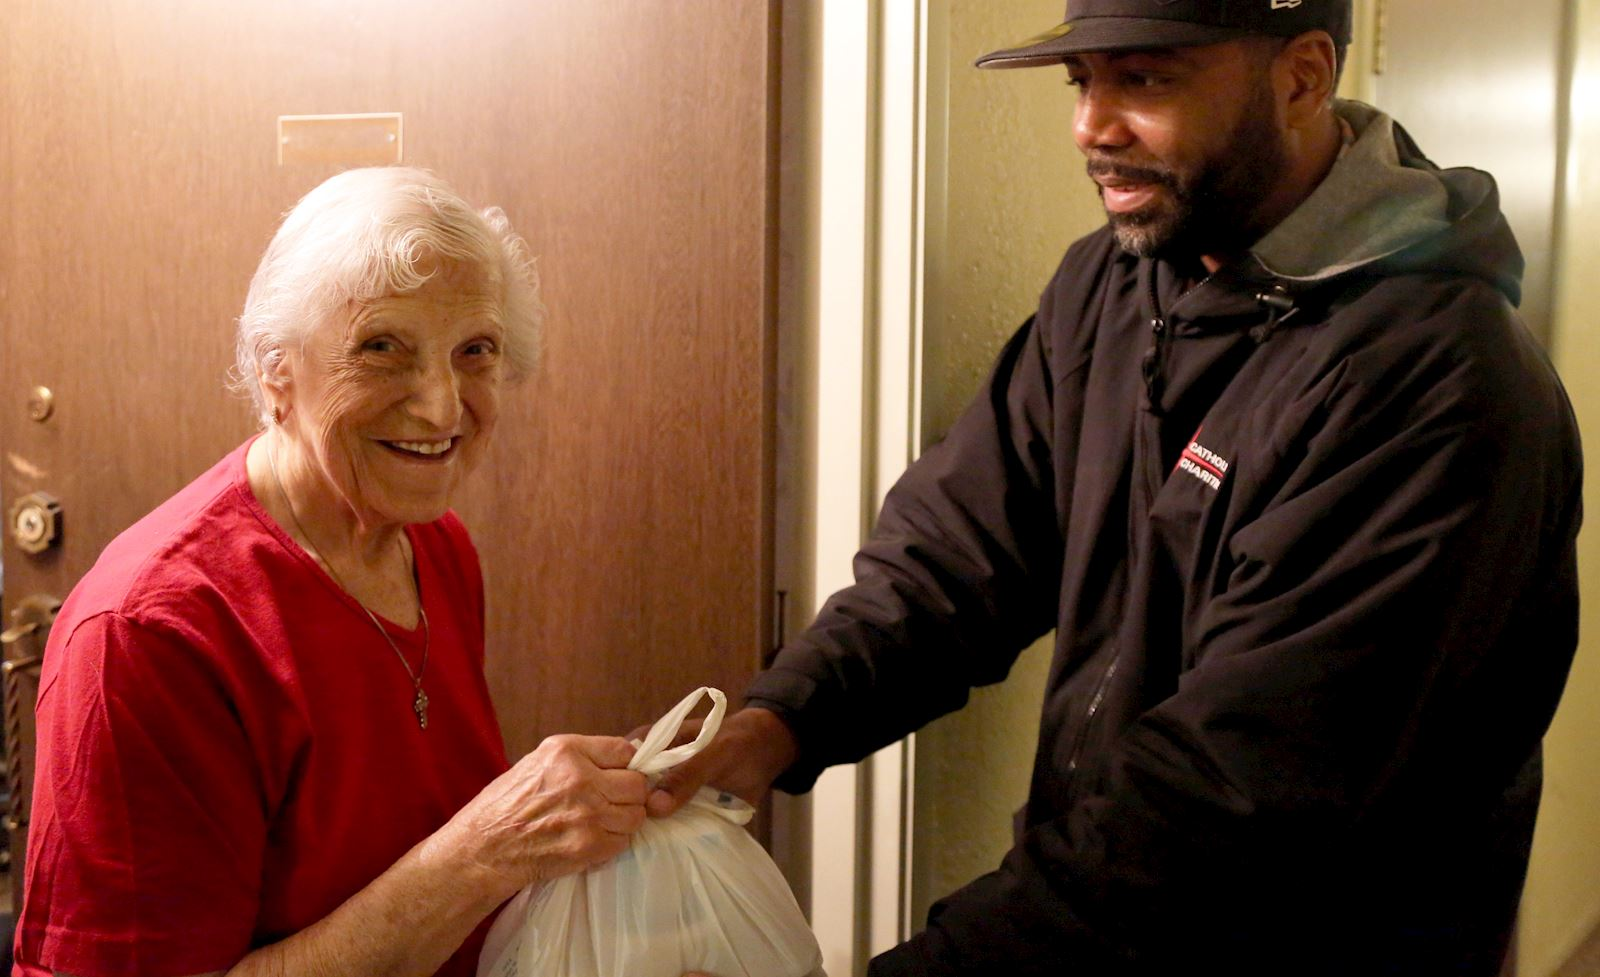 Volunteer delivers a meal to a senior at home